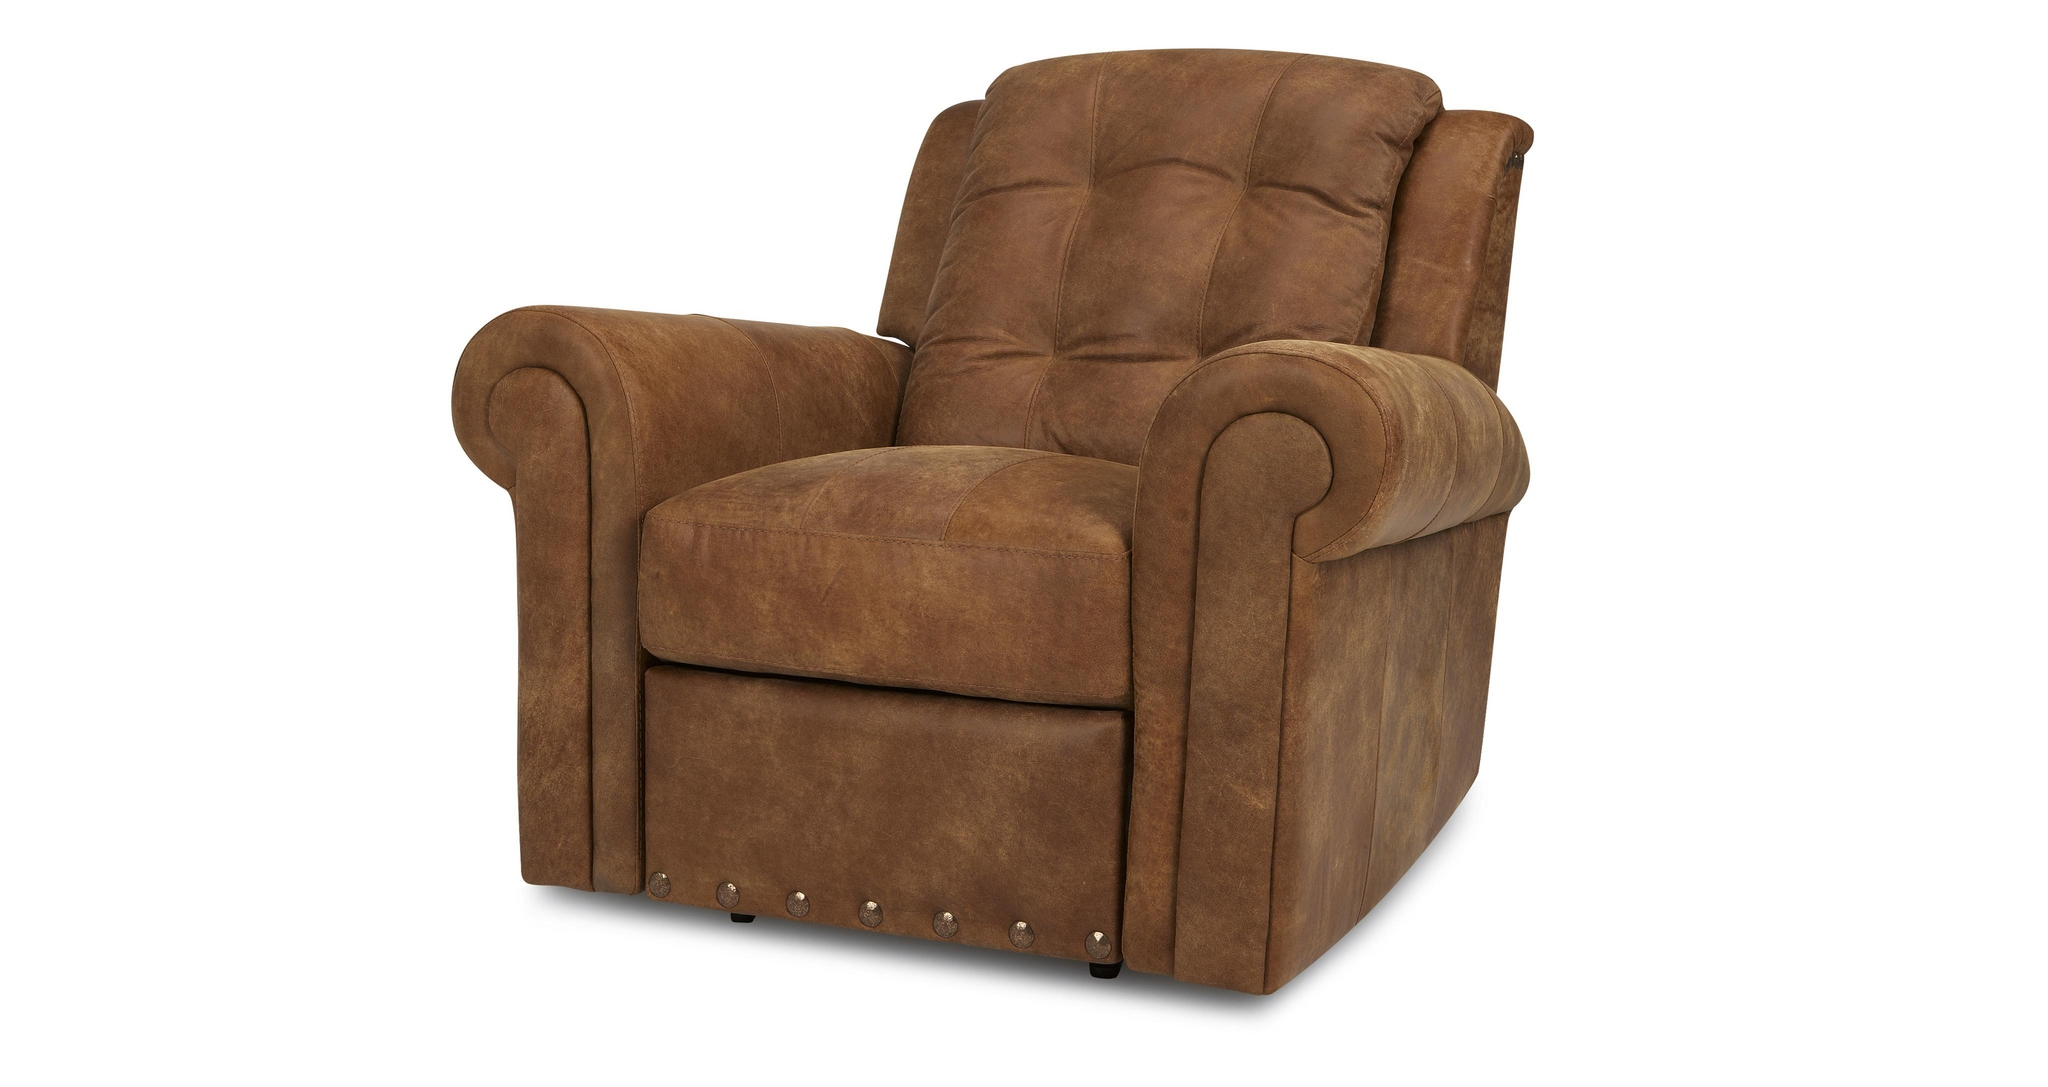 swivel rocker chairs for living room recliner chair small swivel rocker chair small swivel barrel chairs - Swivel Rocker Chairs For Living Room